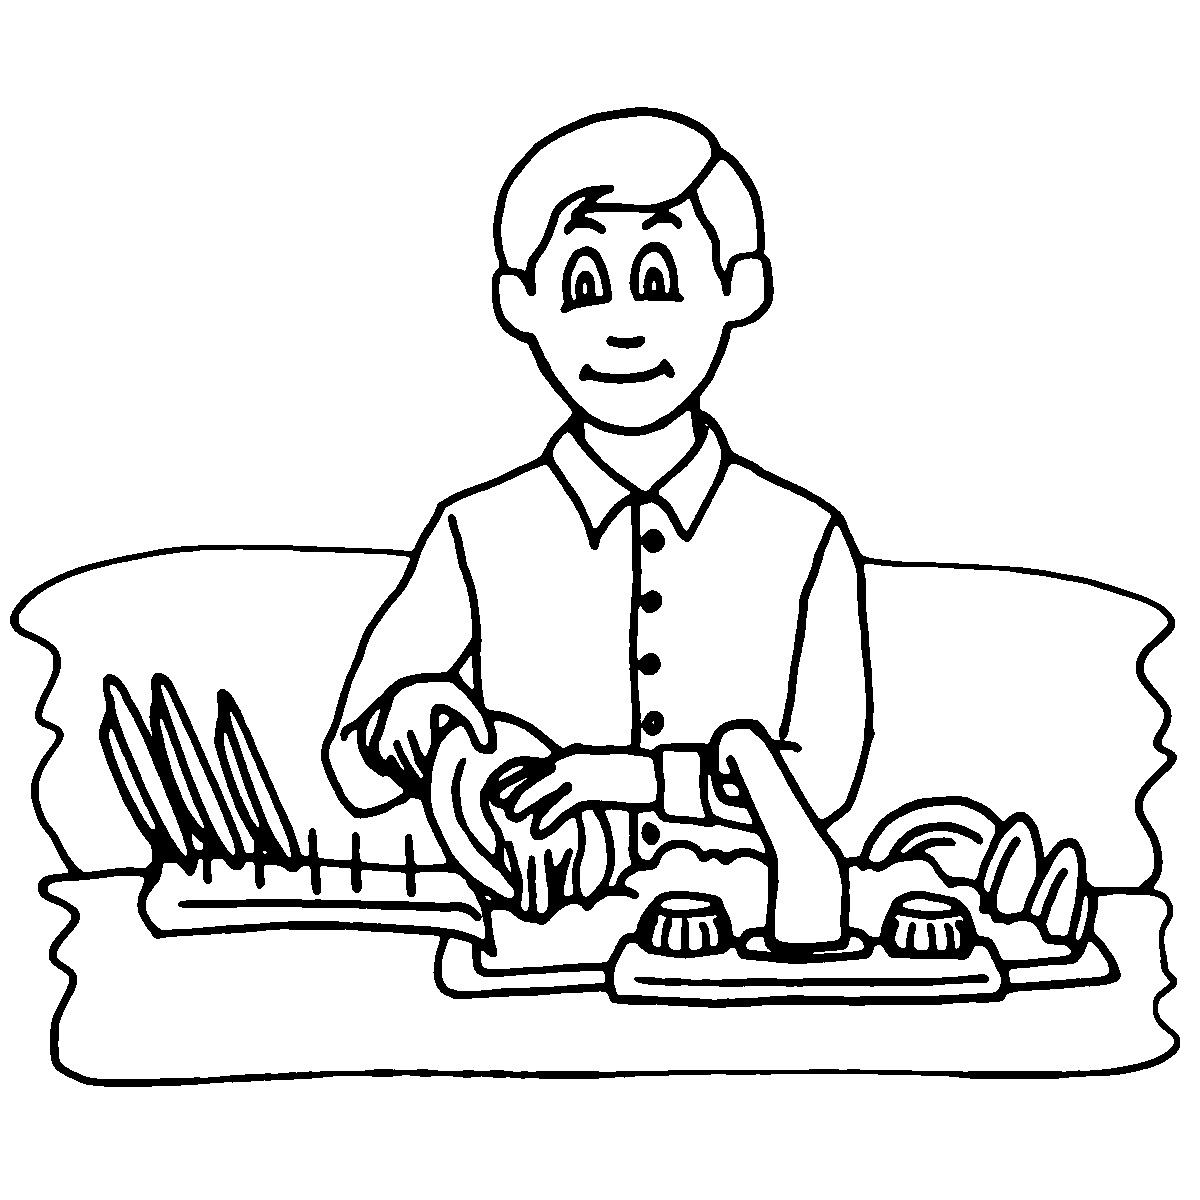 Bed clipart household chore Clipart Panda Clipart Images Clip